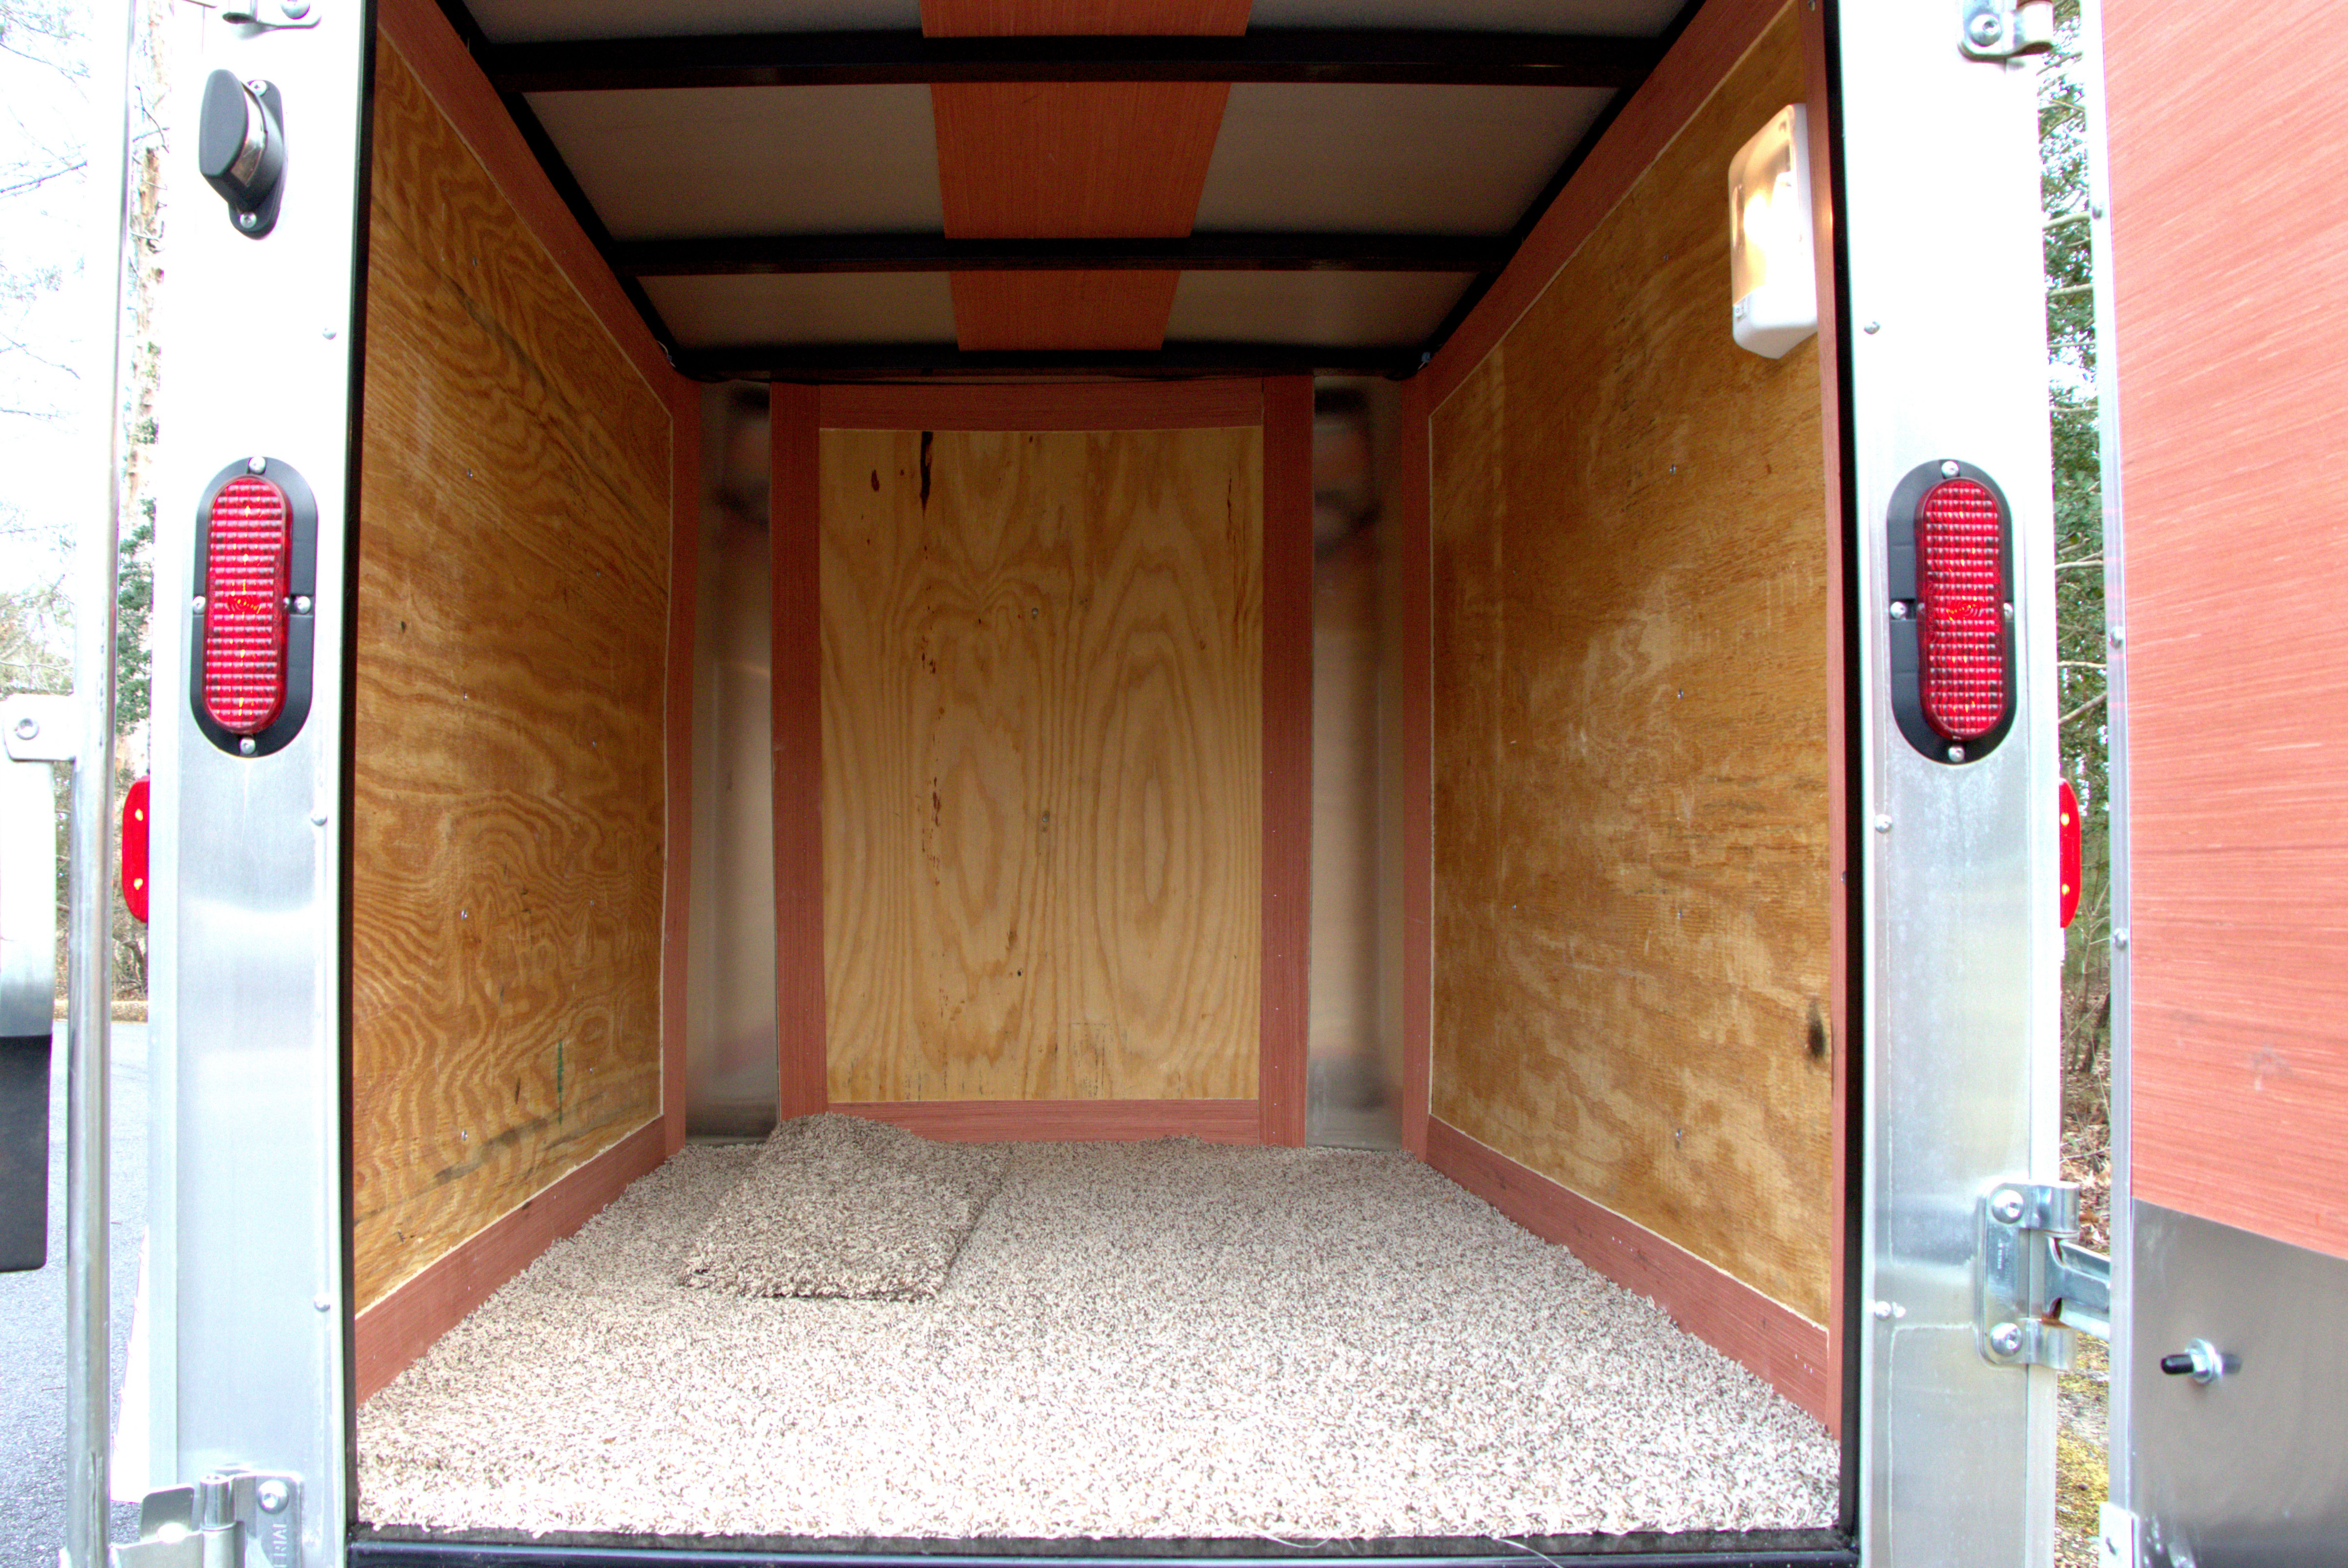 enclosed trailer flooring ideas. I Haven\u0027t Decided Whether Will Soften The Ride Like Had On Baby Trailer. It Weighs 600 Lbs Empty, So Double-eye Leaf Springs Are Already Enclosed Trailer Flooring Ideas T